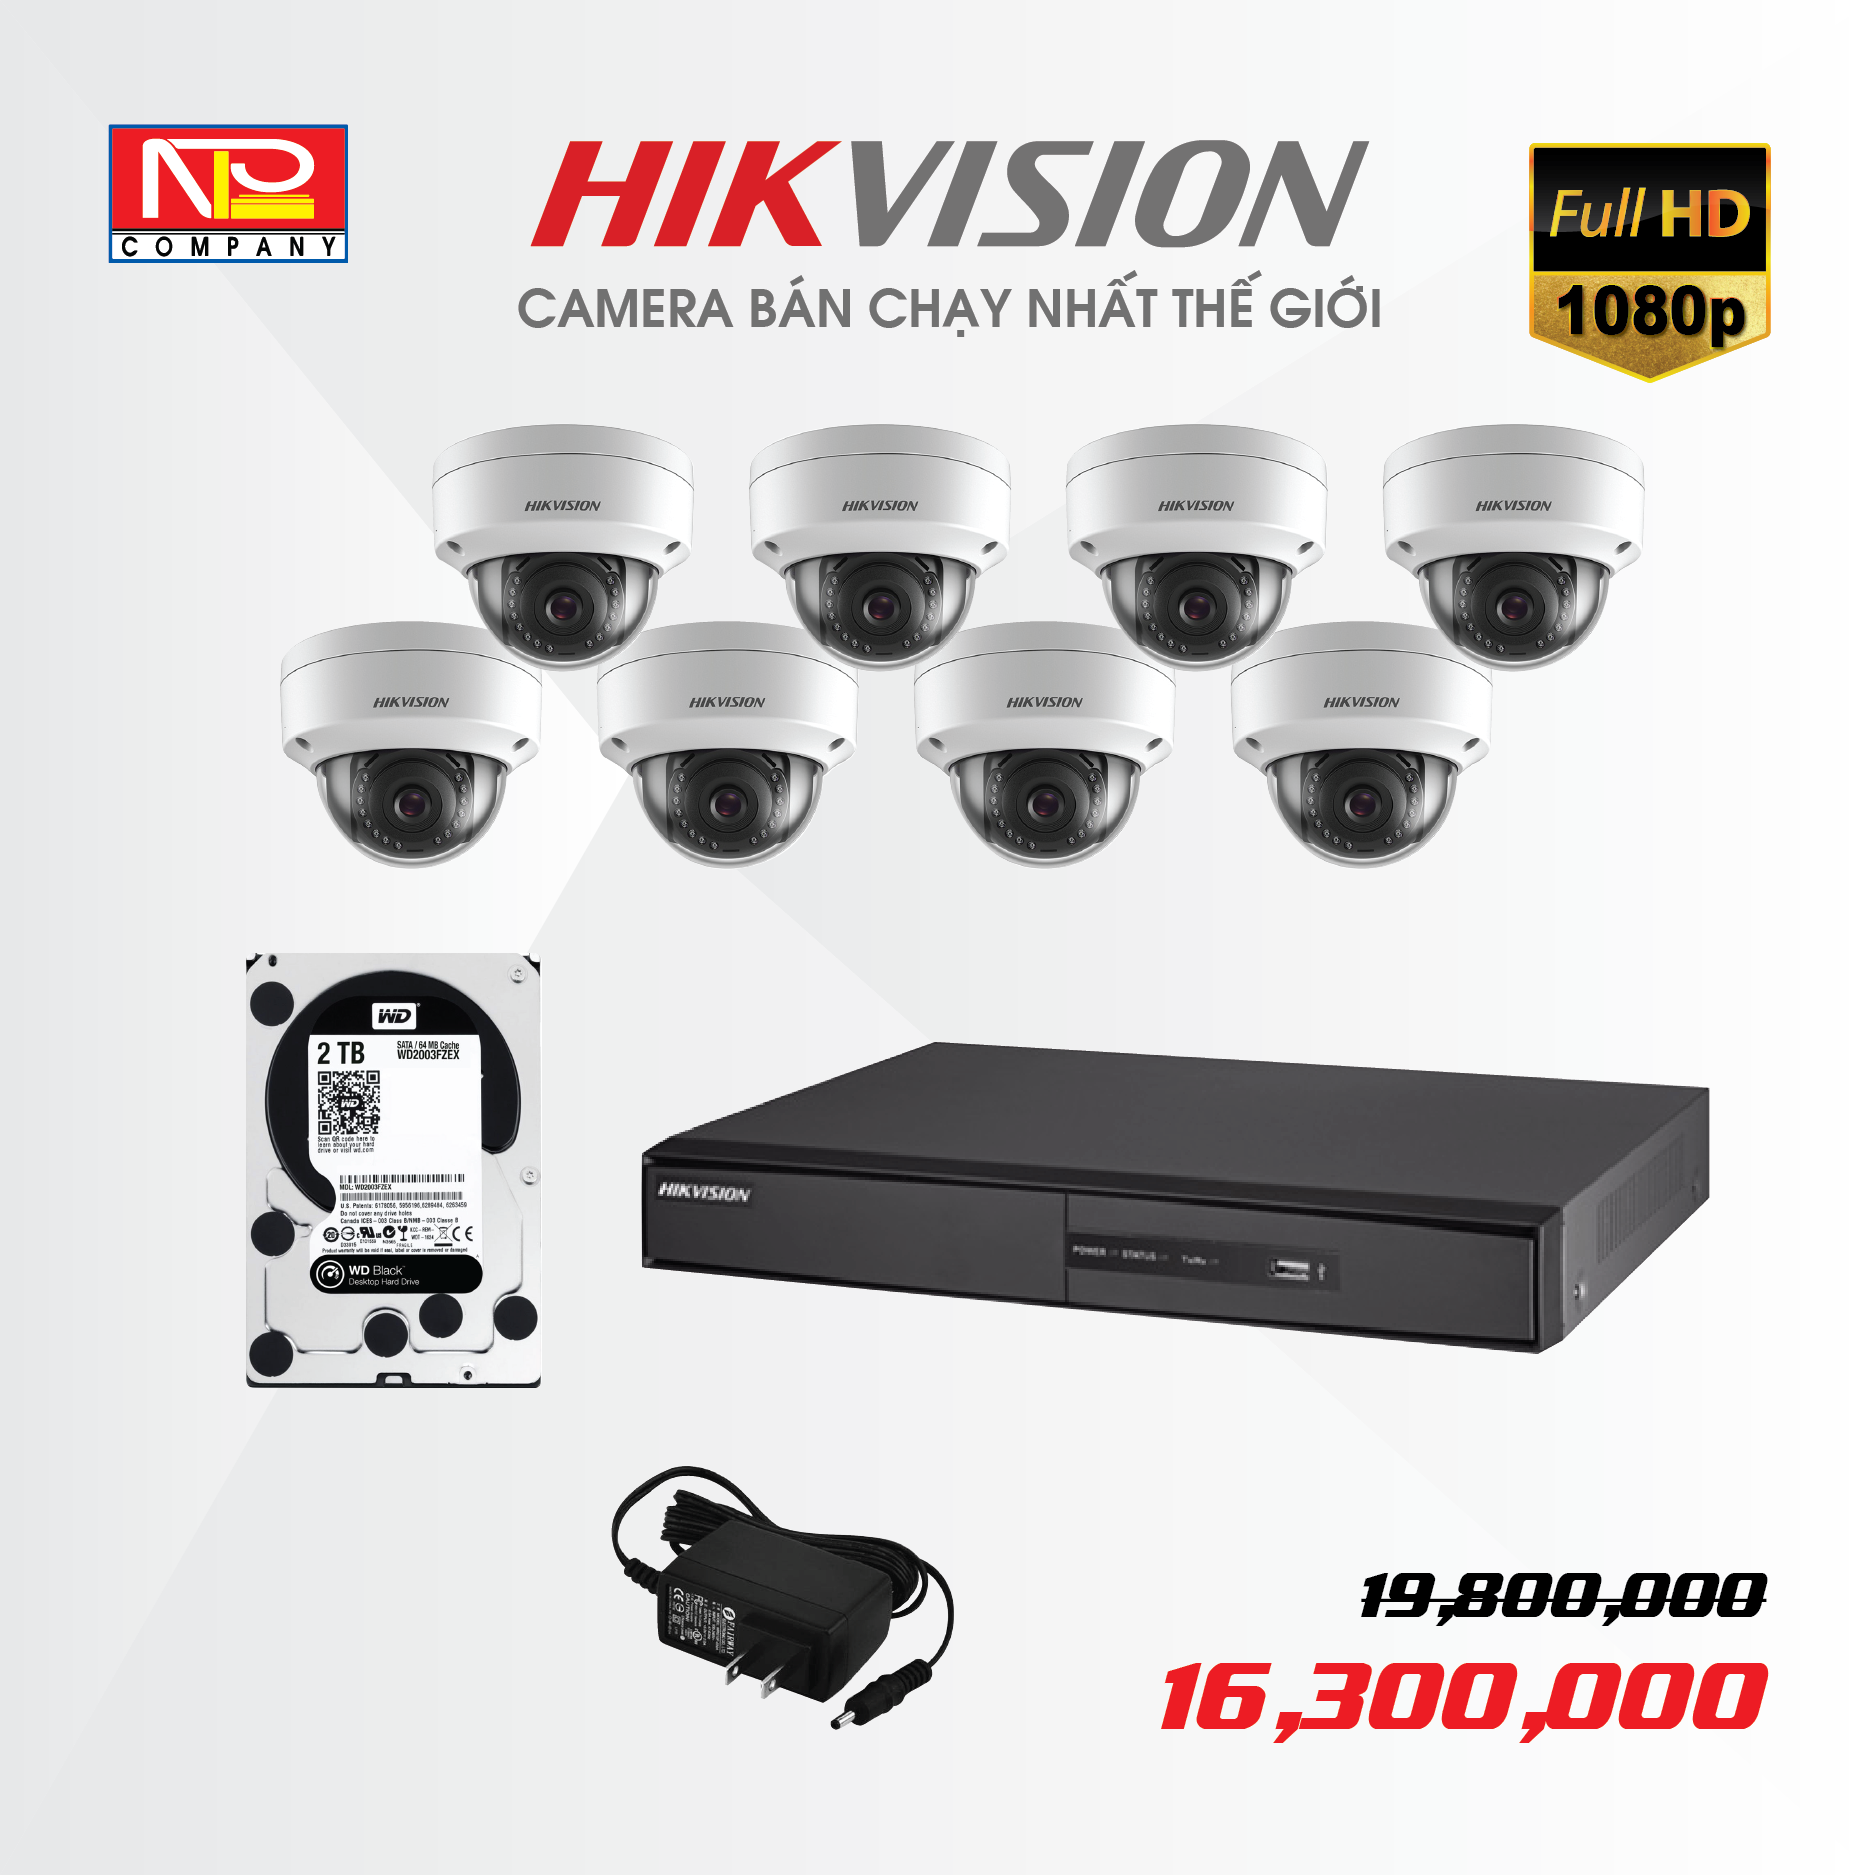 Bộ kit 8 camera IP Hikvision Full HD1080P